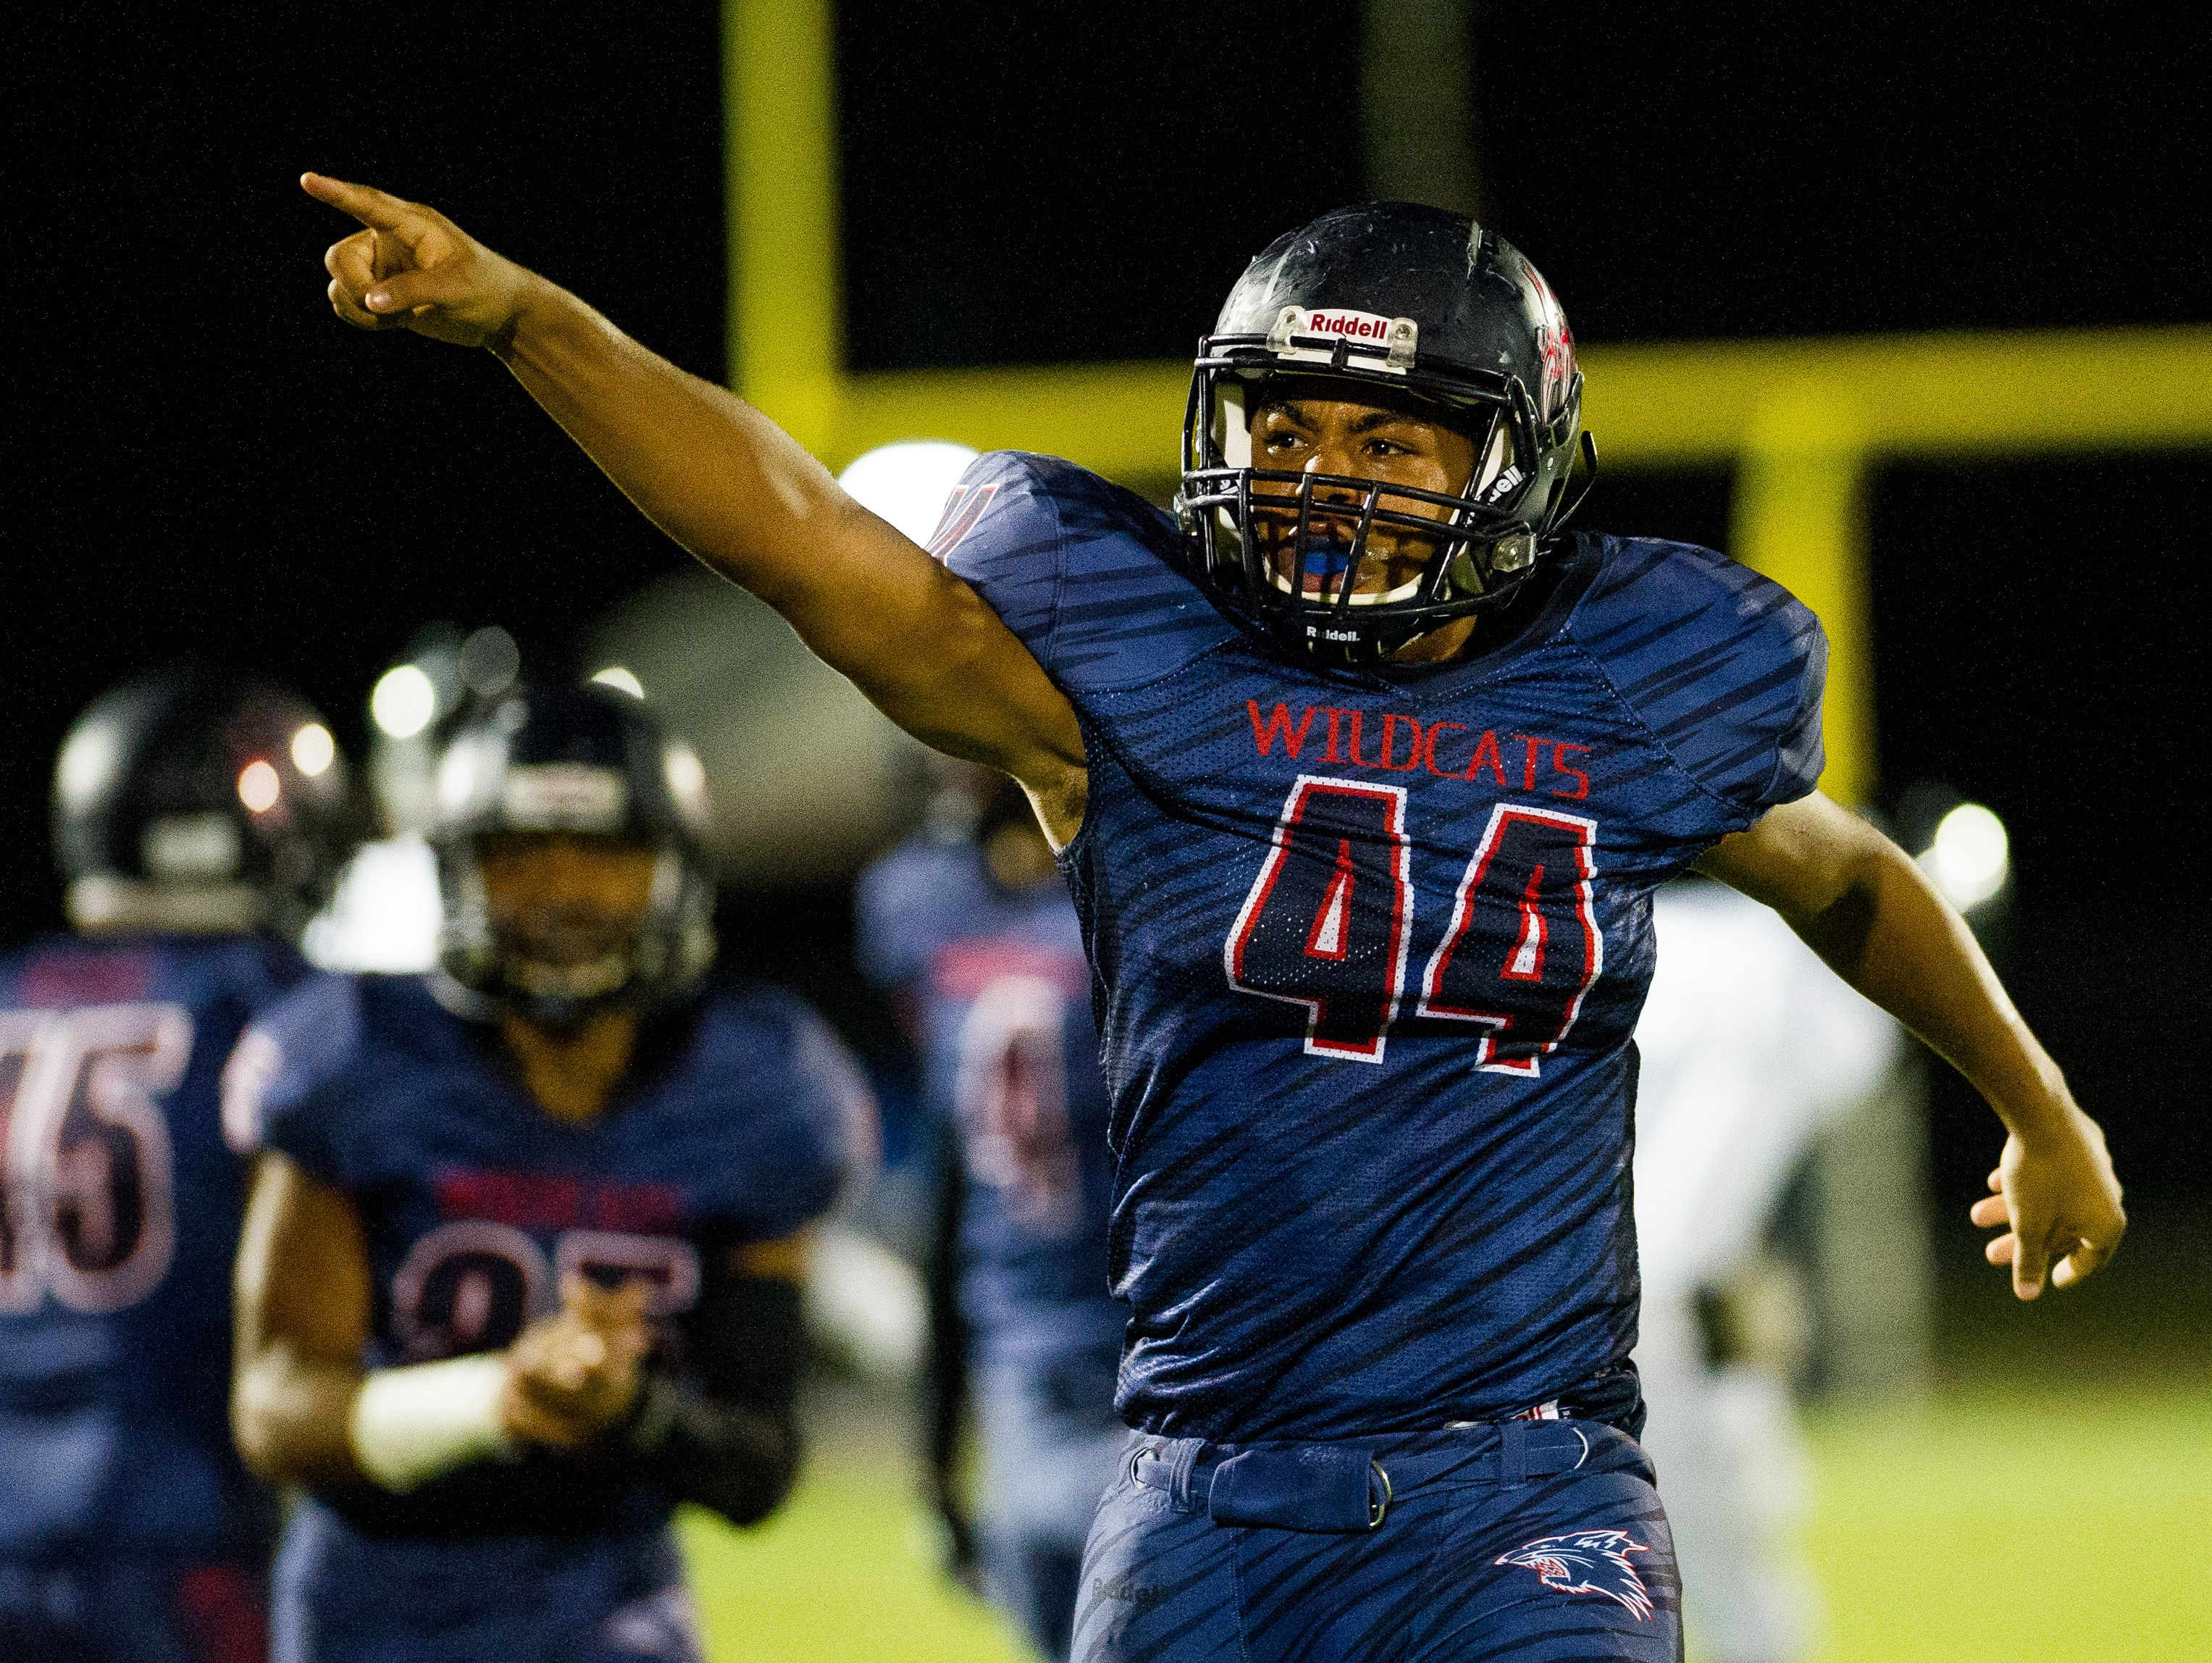 Estero High School's Dj Adams reacts to a fumble recovery early in the first half of a game against Gulf Coast High School in Estero, Fla., on Friday, Sept. 23, 2016.